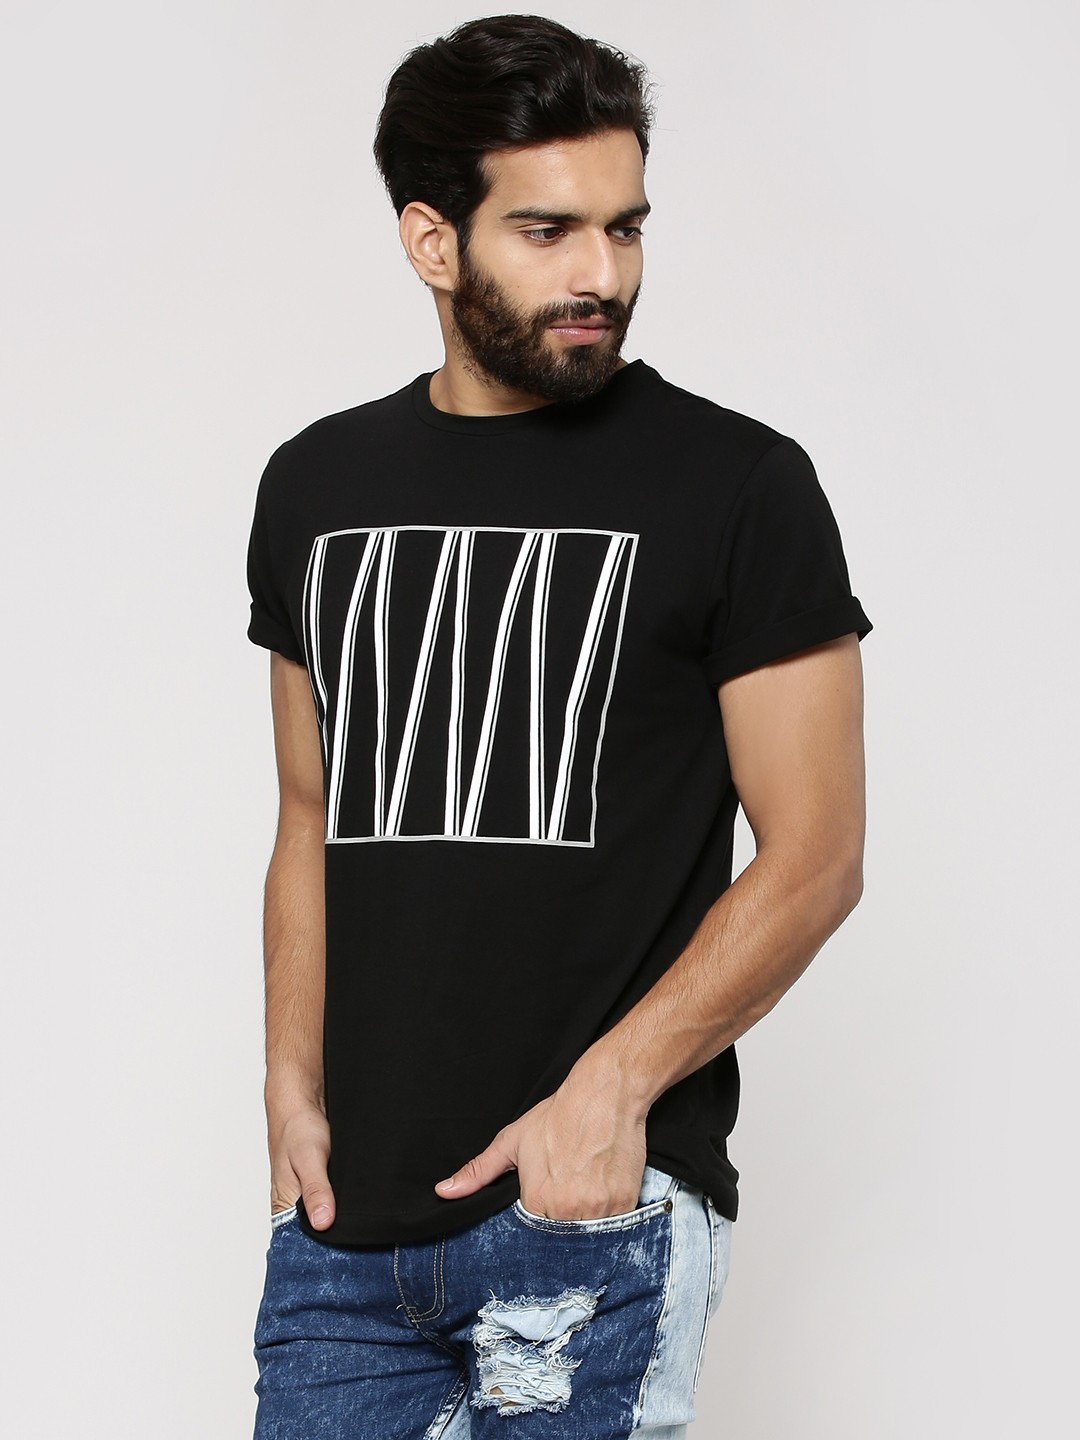 Black t shirt style - Koovs Square Line Print Tee In The Style Of Chris Brown